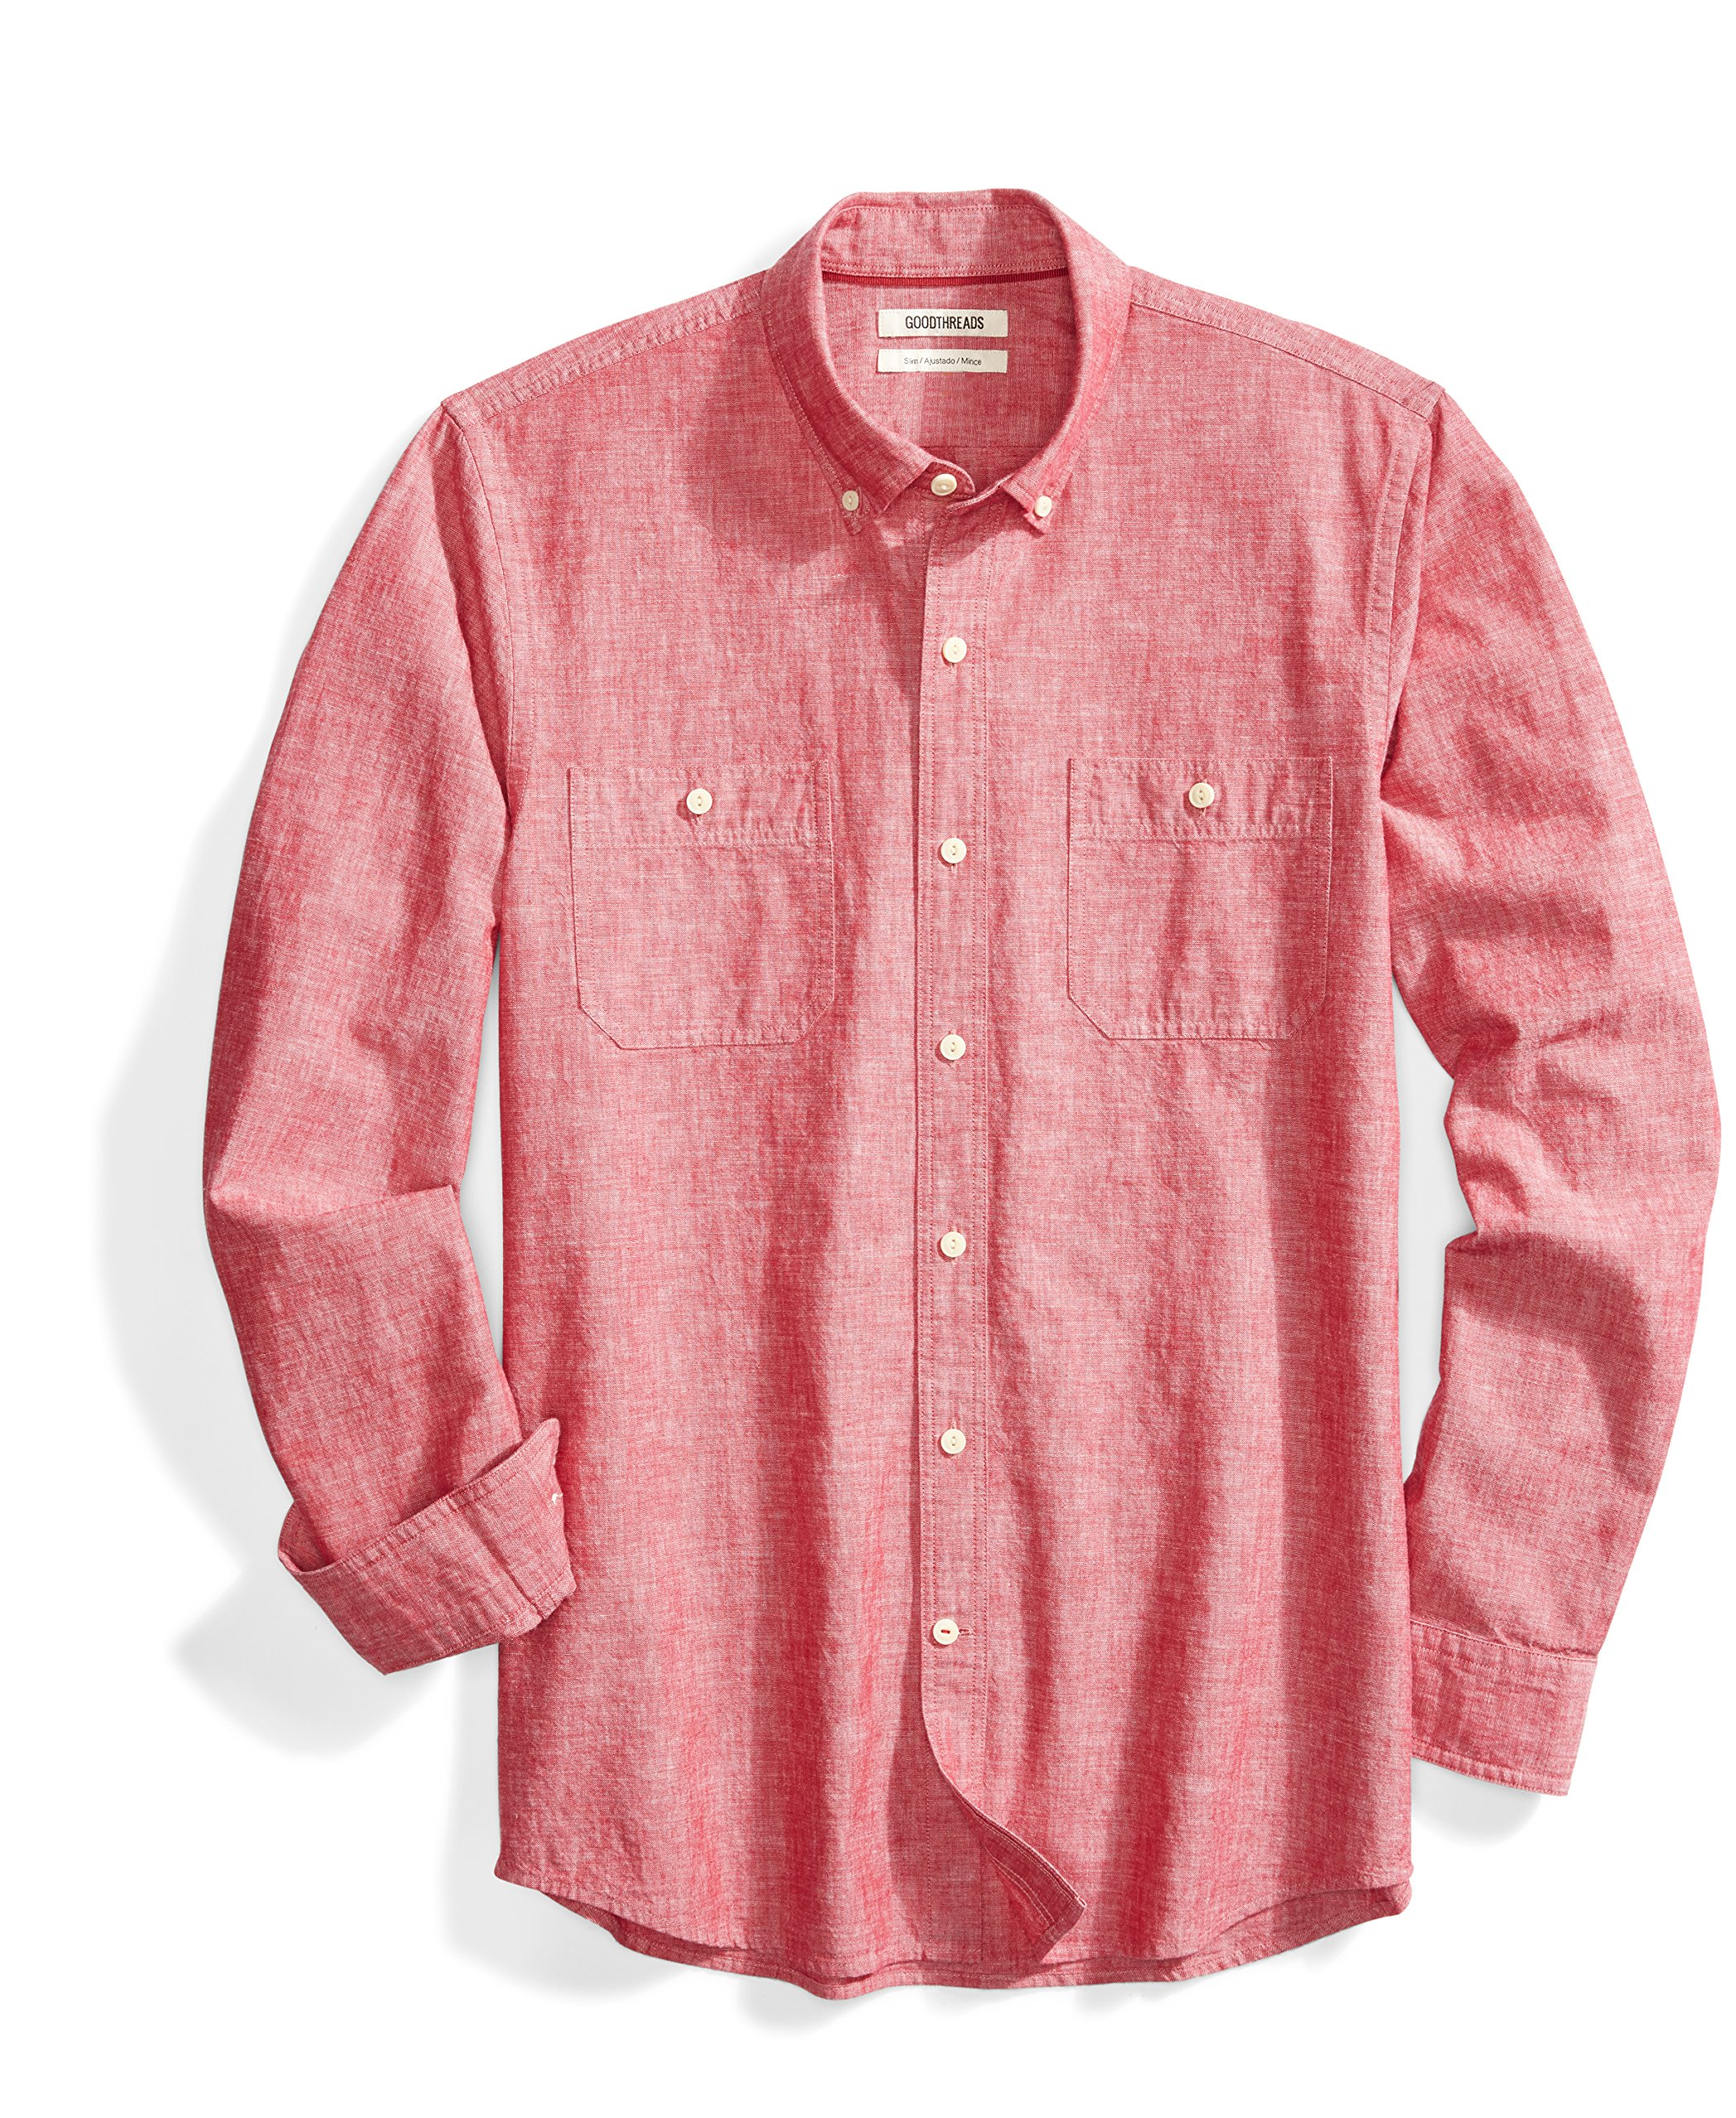 Goodthreads Men's Slim-Fit Long-Sleeve Chambray Shirt, Red, Small